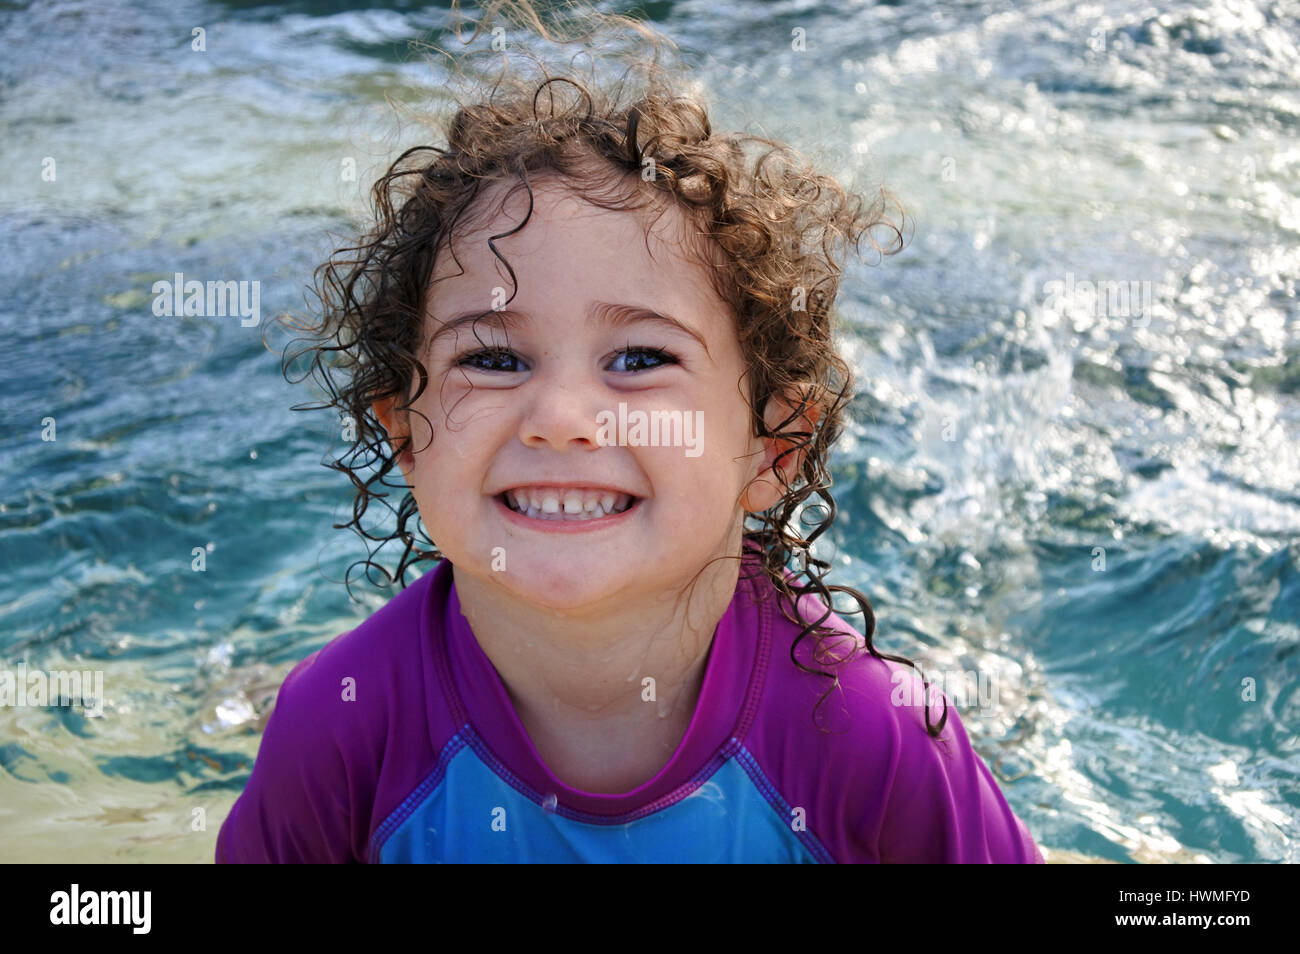 Cheeky little girl (age 2-3) smile in swimming pool during summer holiday. Real people. copy space - Stock Image